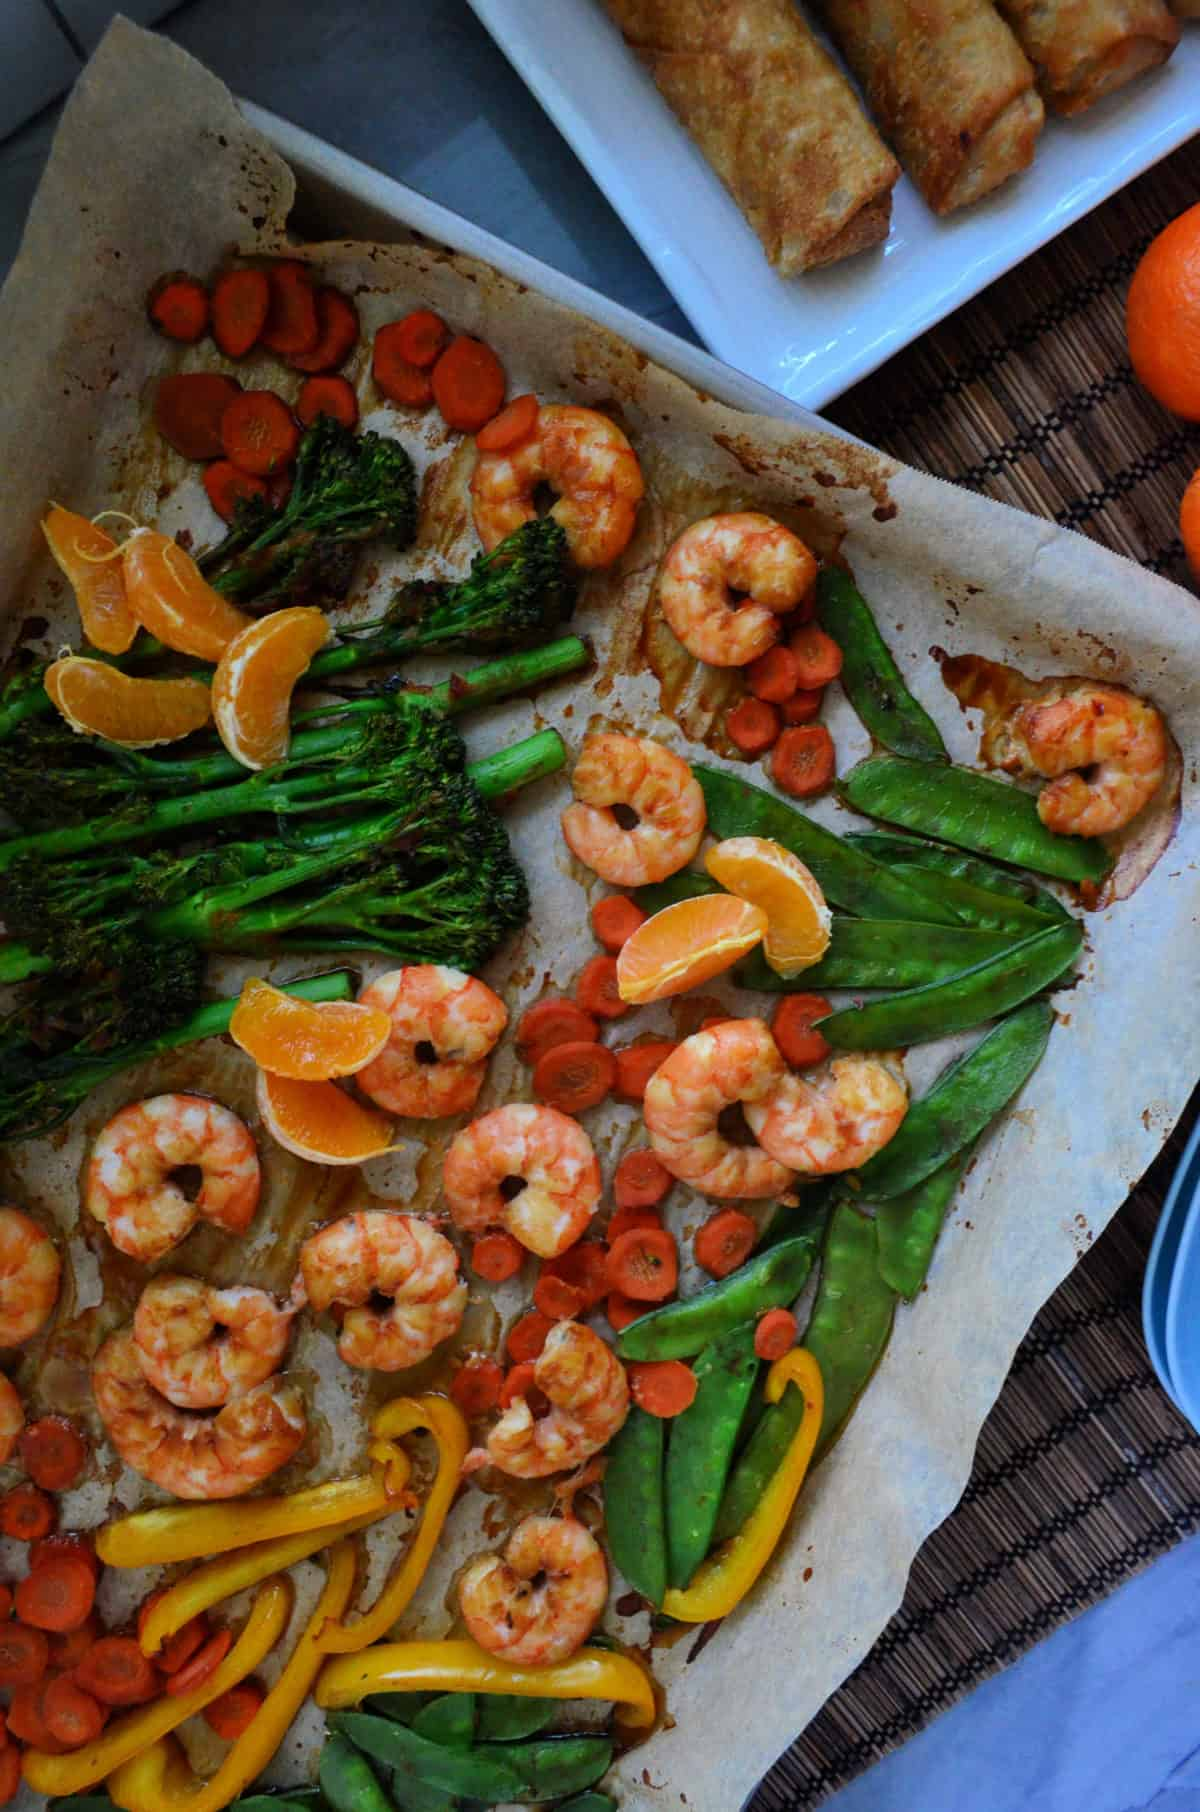 closeup peas, broccolini, mandrine oranges, shrimp, bell pepper, and carrots on paper on baking sheet.